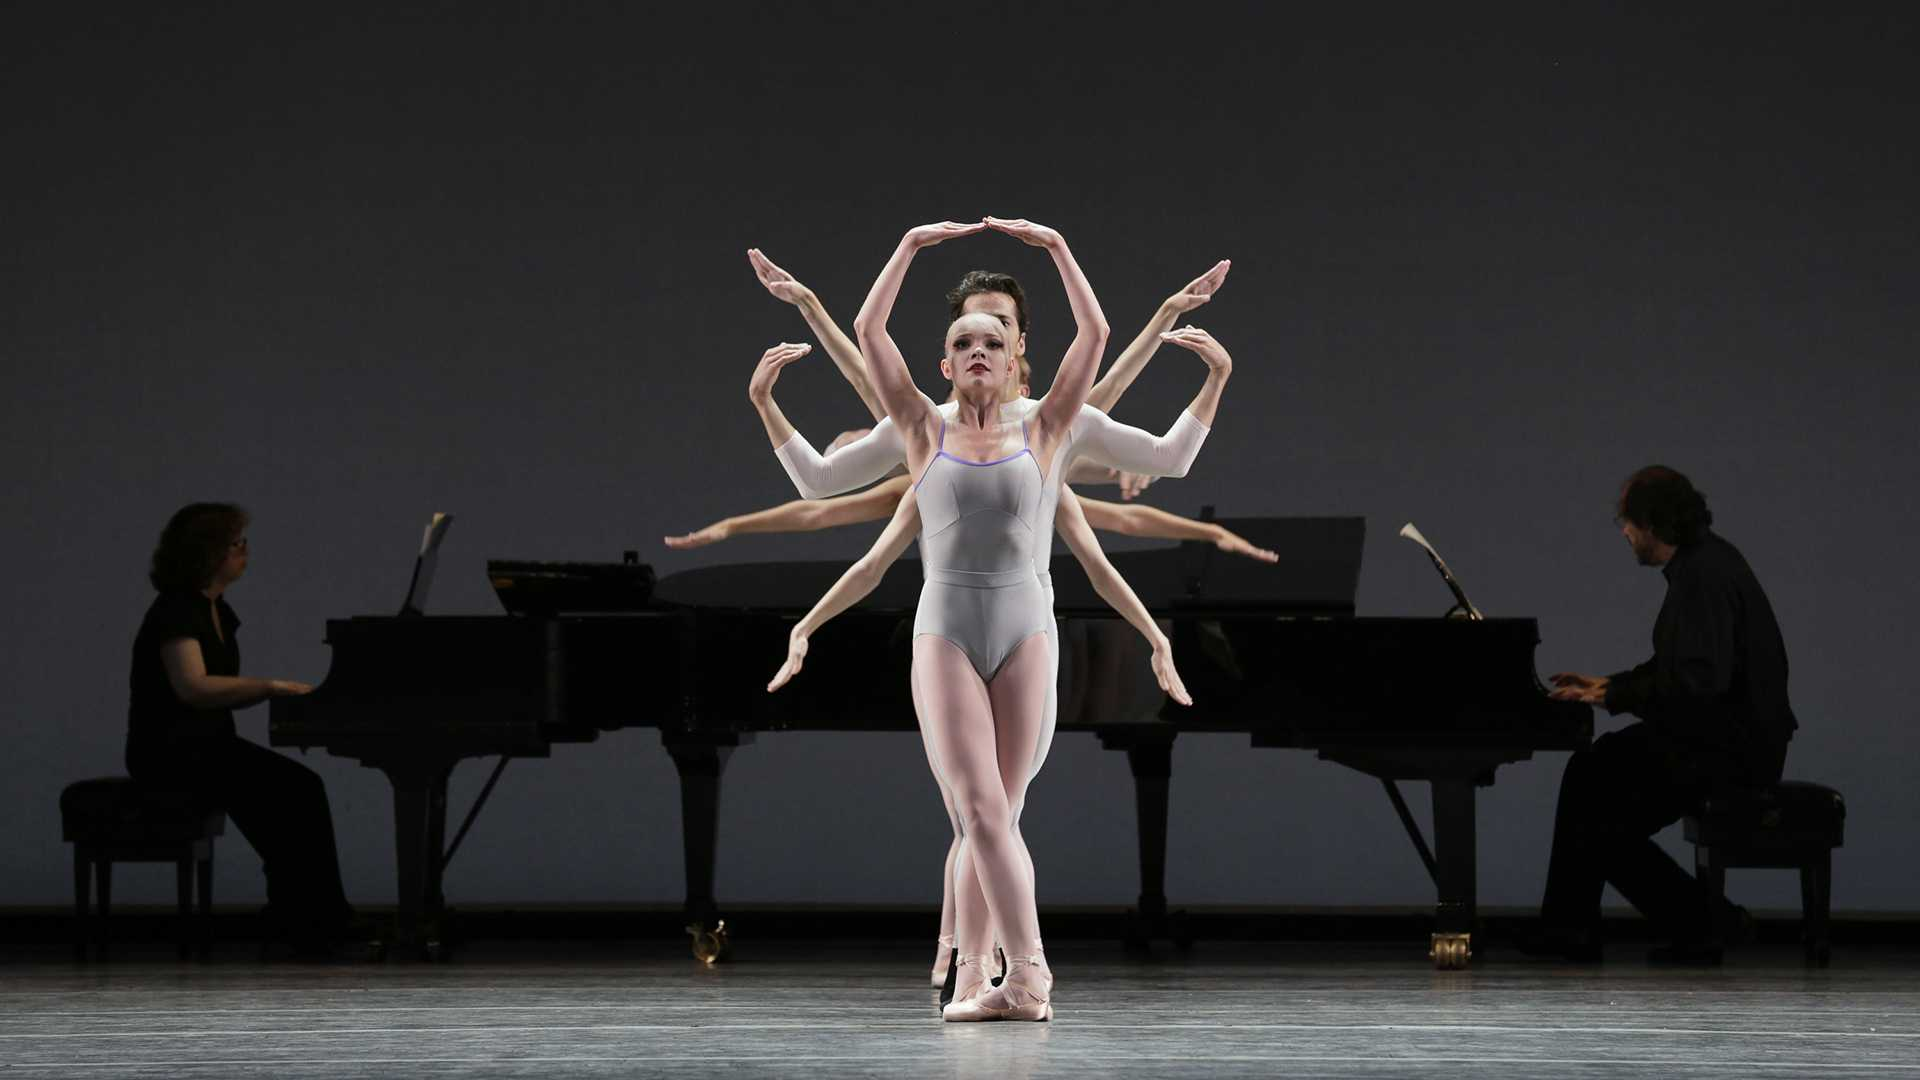 Lydia Wellington in front Pianos: Elaine Chelton and Alan Moverman In Creases; Choreography by Justin Peck; New York City Ballet/World Premiere Credit Photo: Paul Kolnik